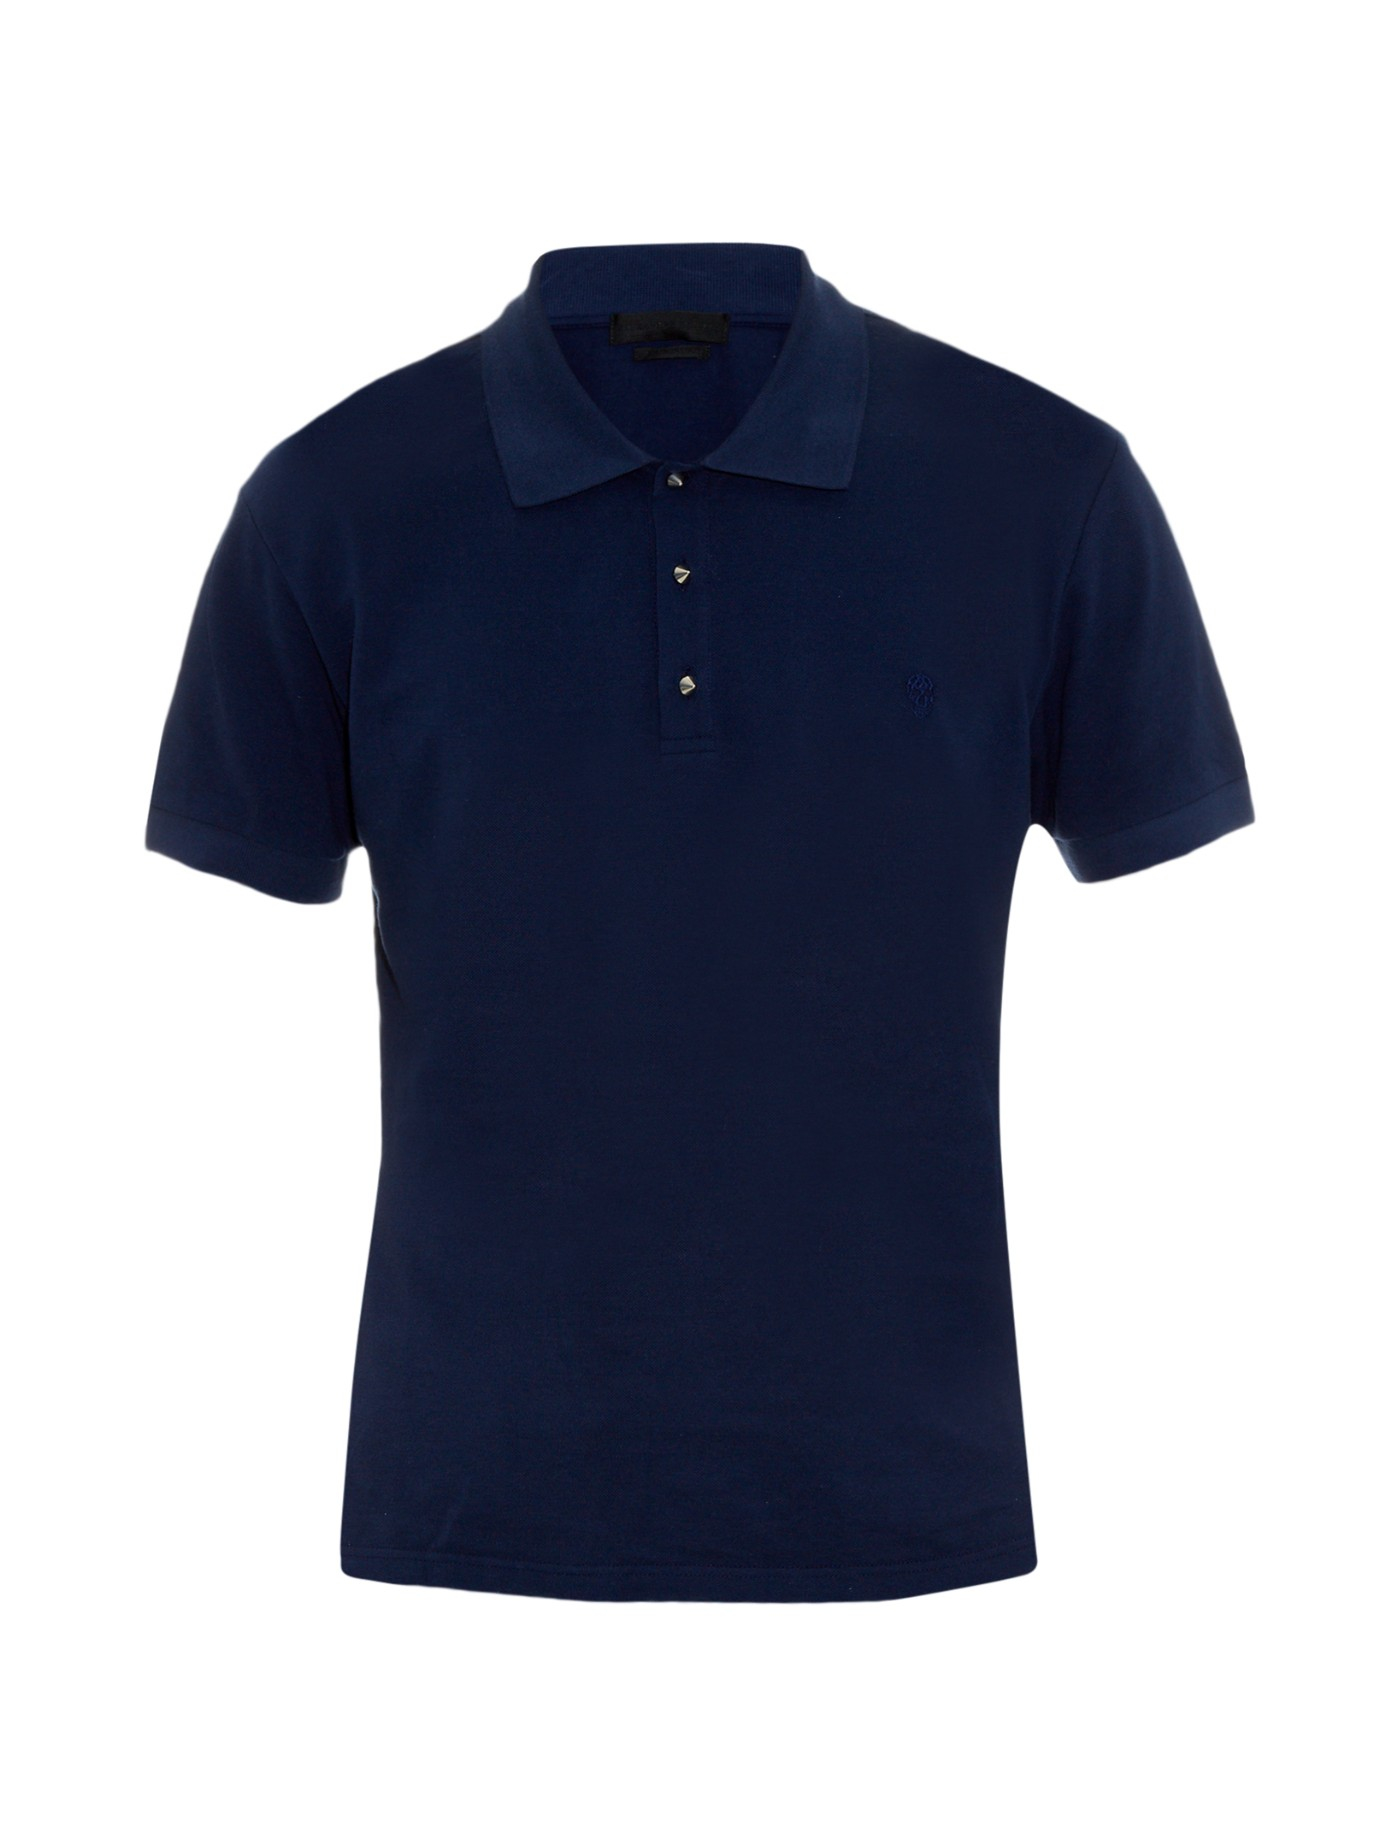 Alexander mcqueen studded cotton piqu polo shirt in blue for Cotton polo shirts with logo